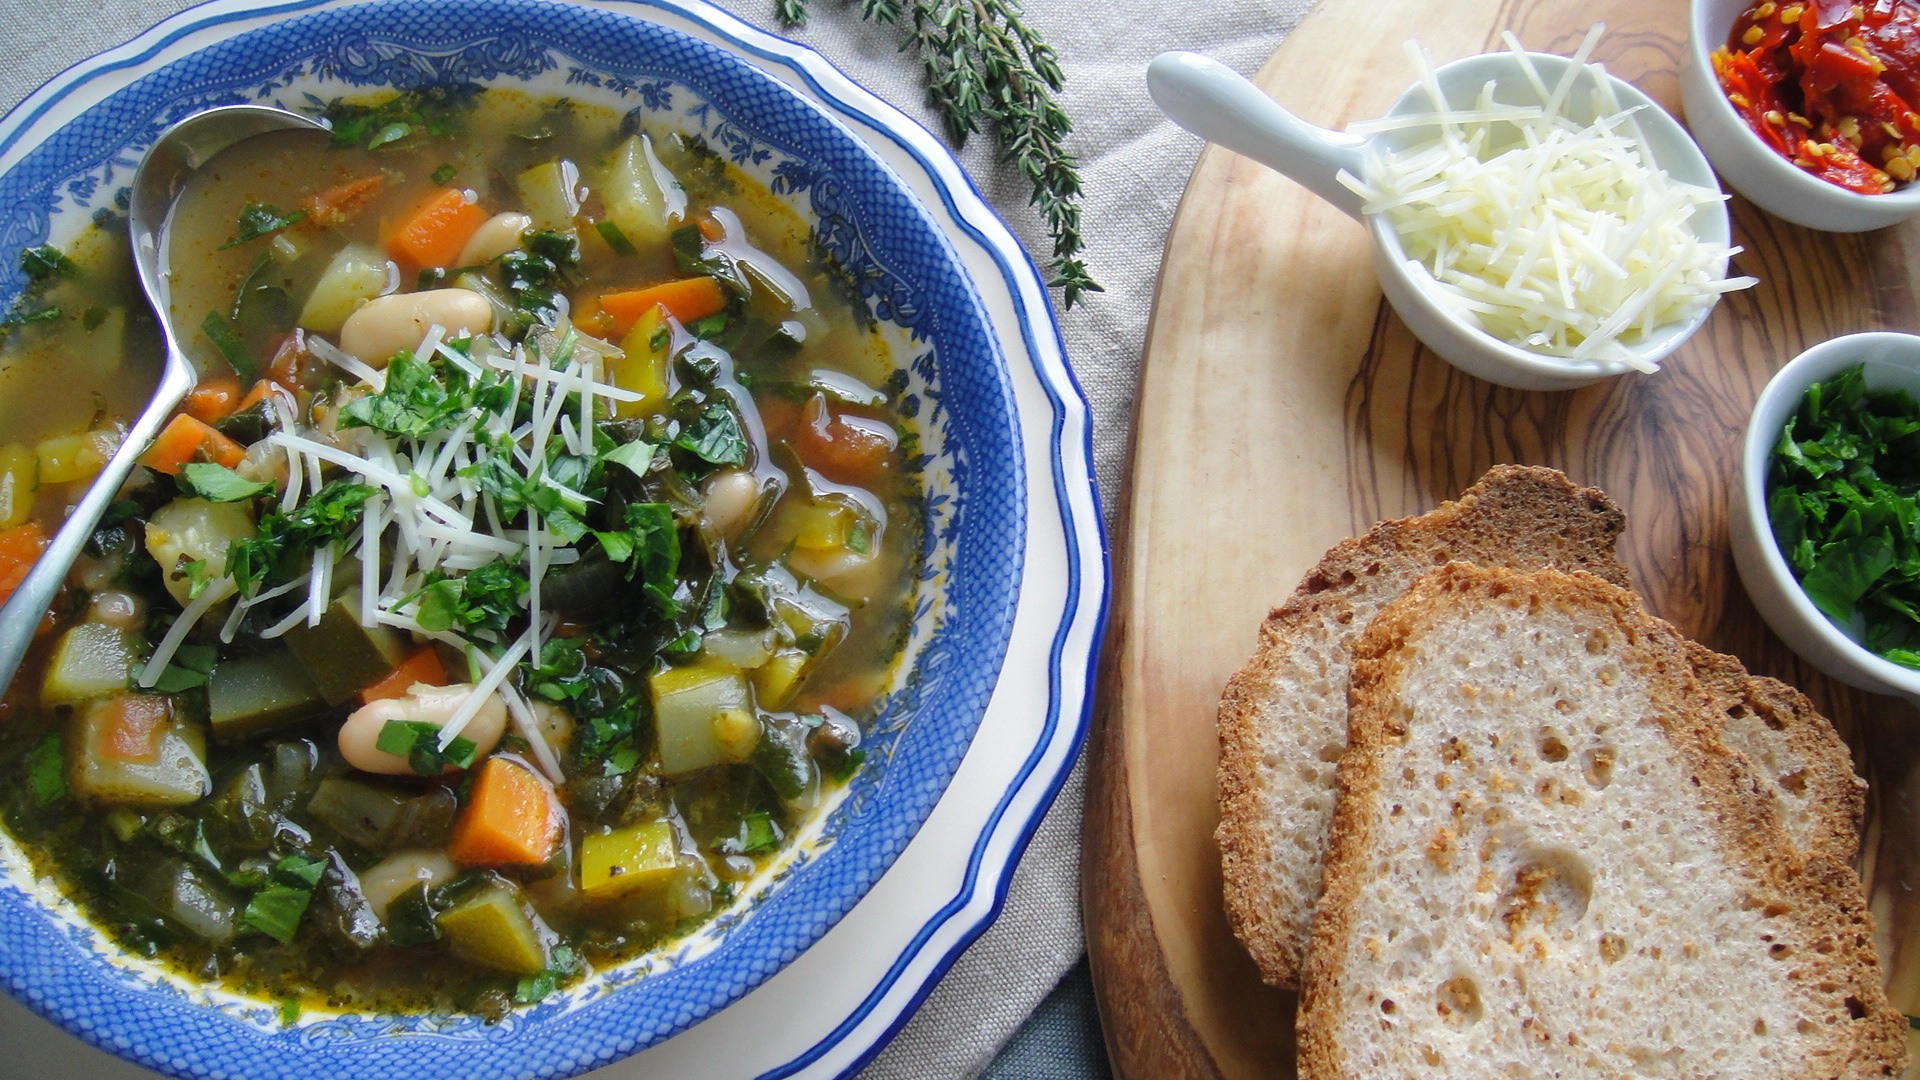 Italian Vegetable Soup with Cannellini Beans